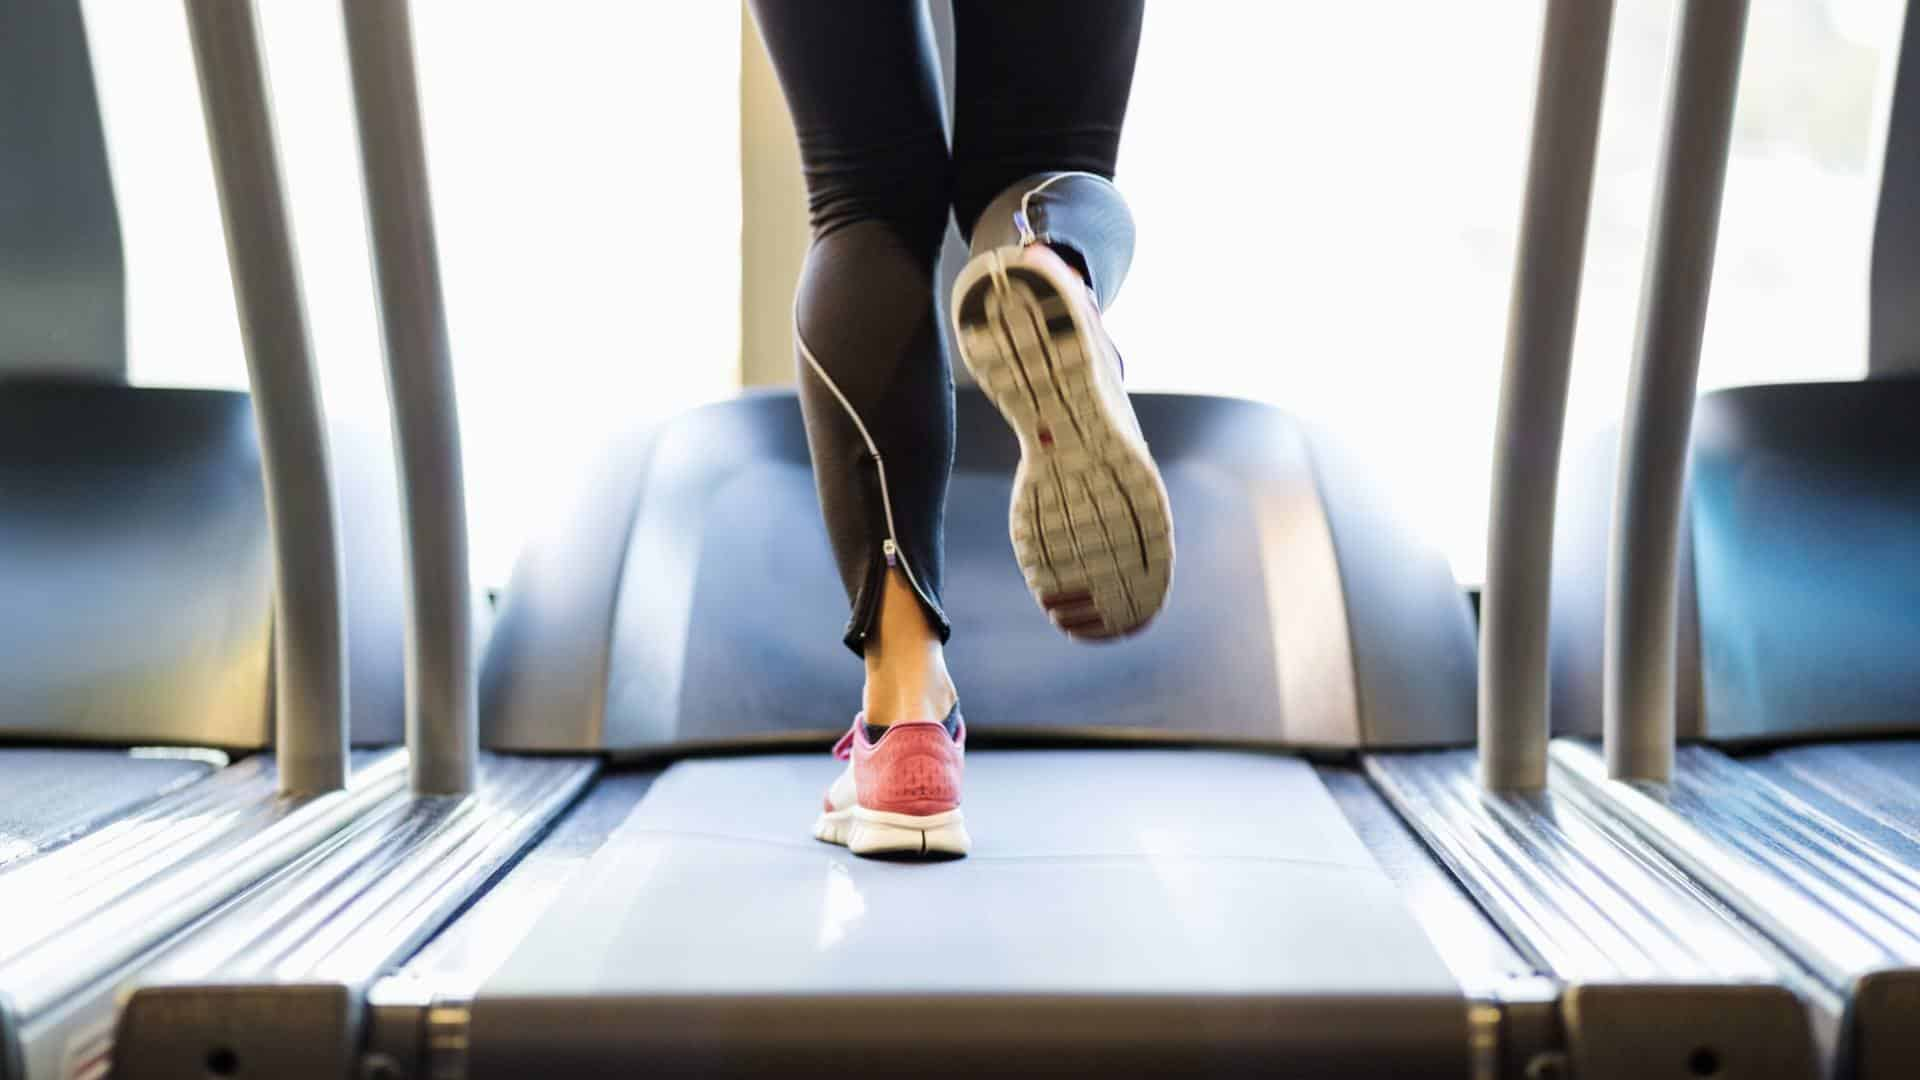 Running on a treadmill has tremendous benefits. Did you know you can earn a medal by running on a treadmill? It's one of the top reasons why you should run a VIRTUAL 5K race.